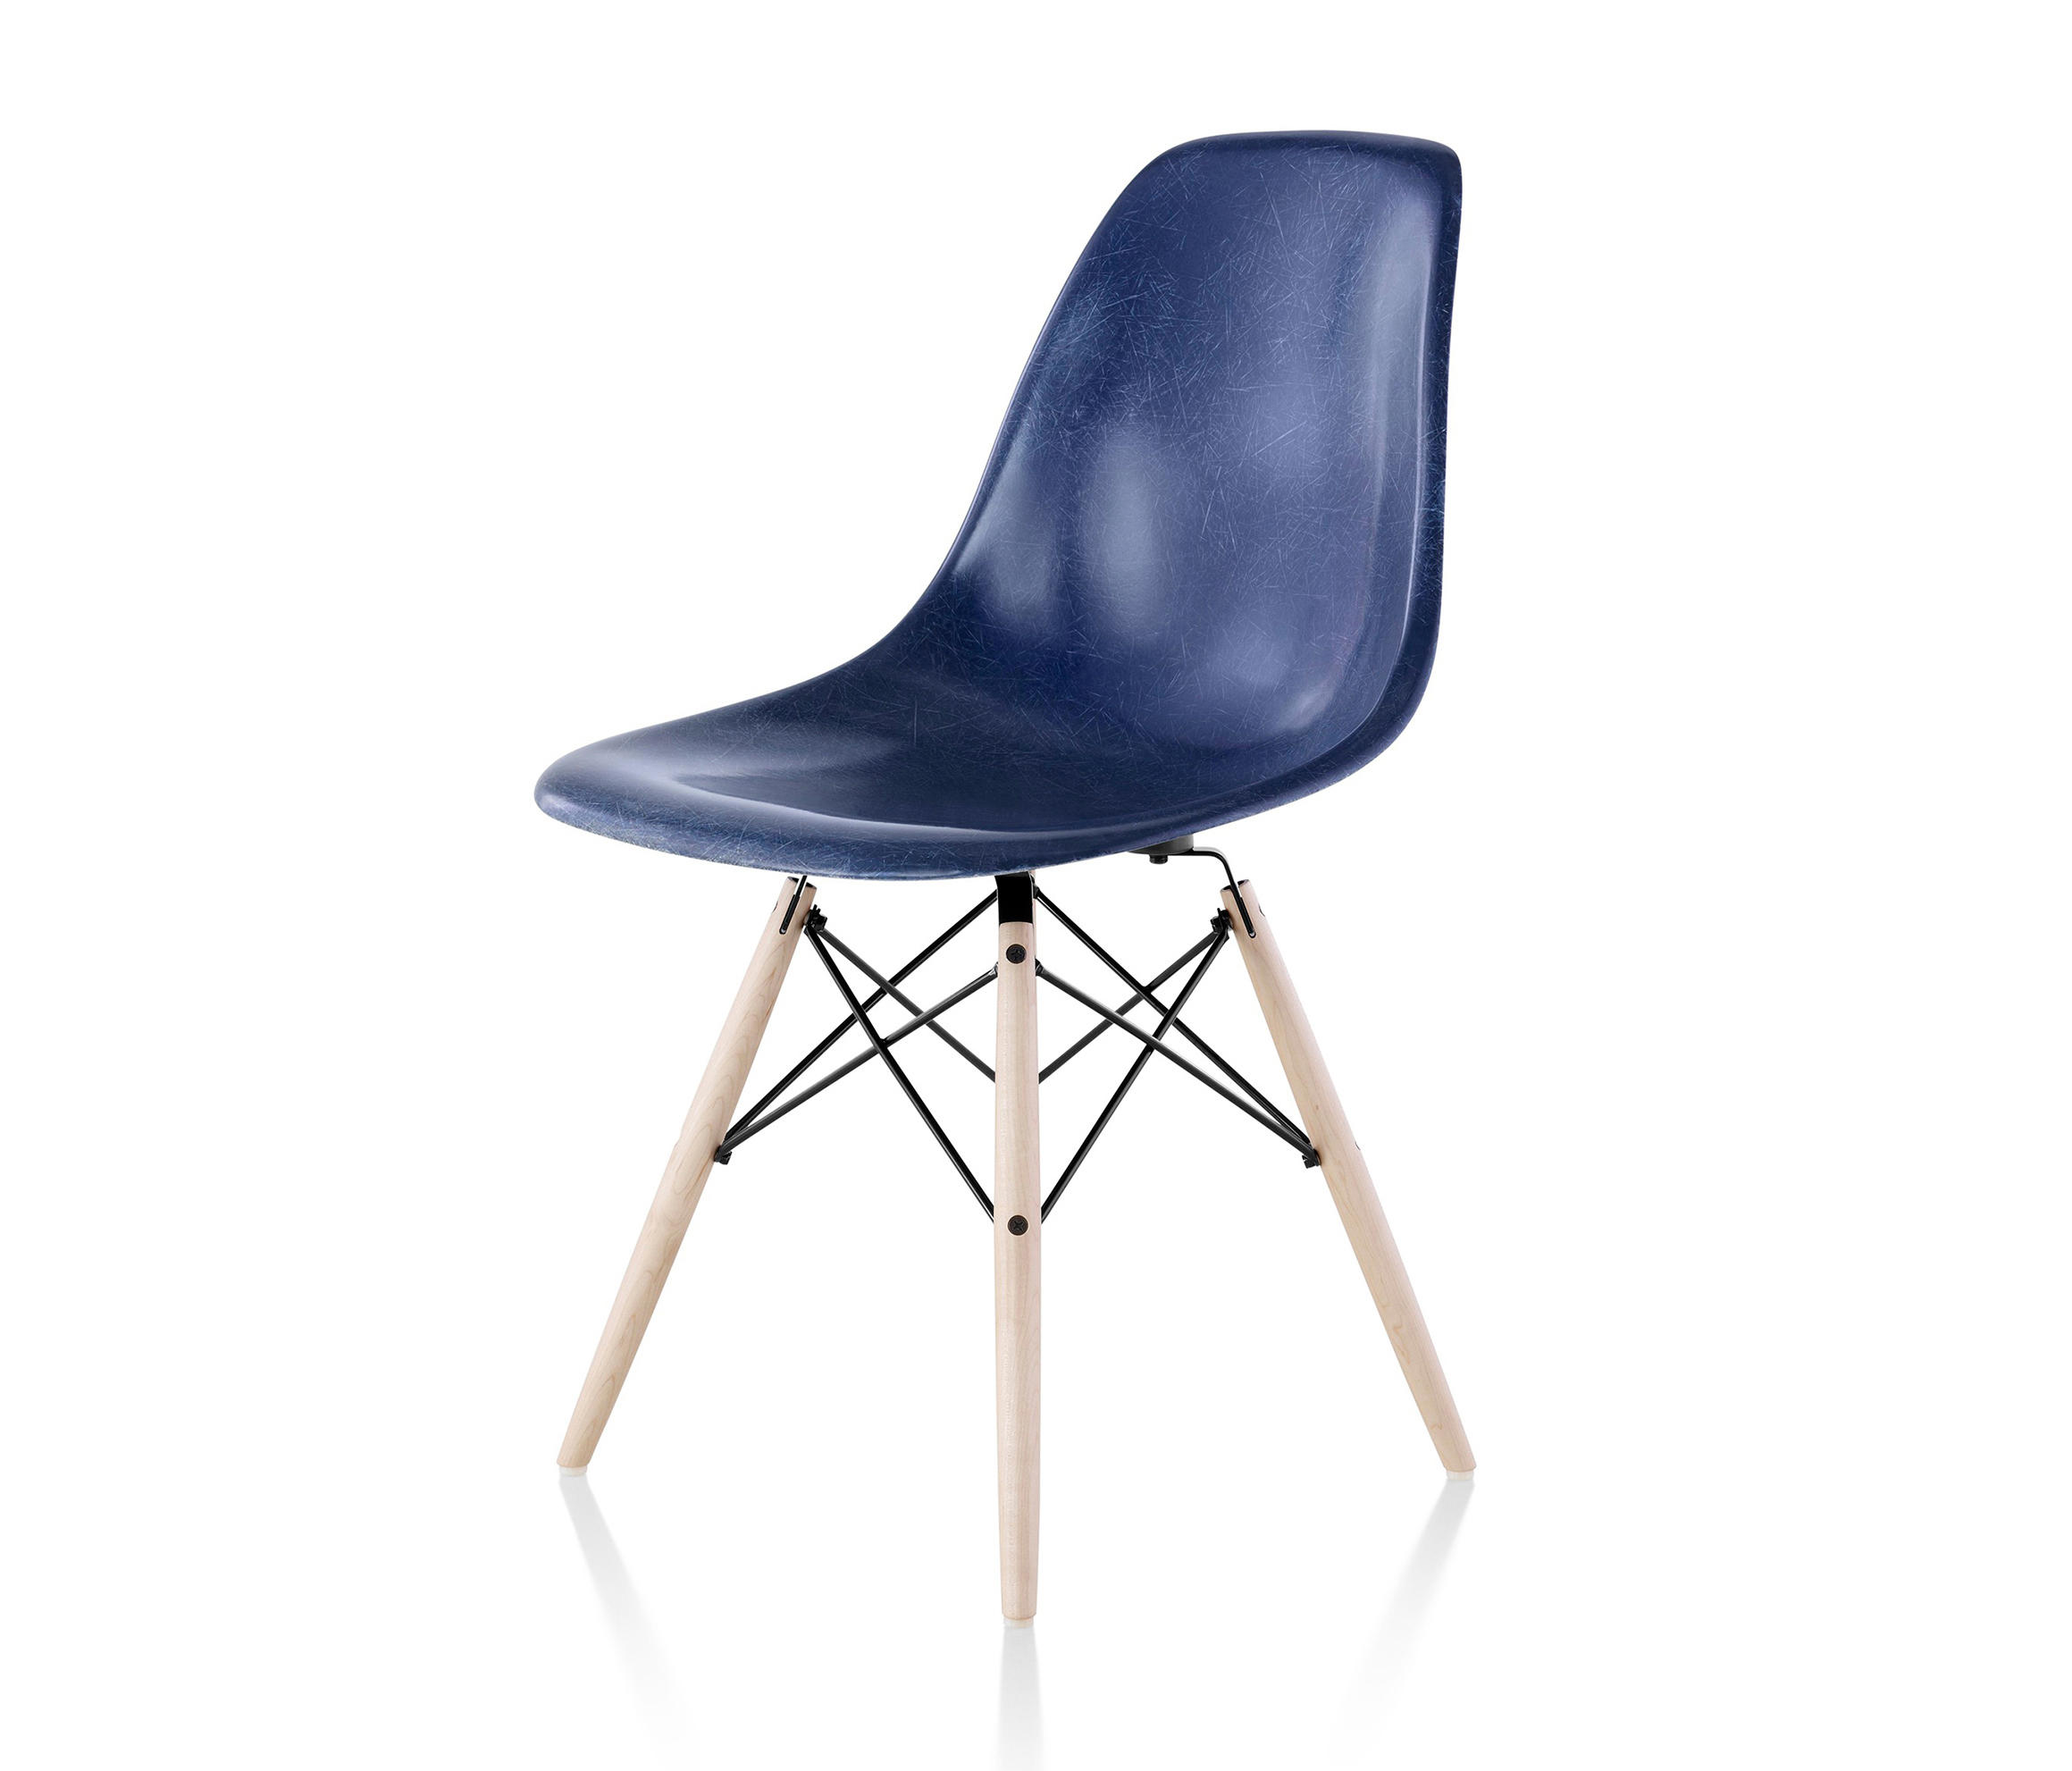 eames molded fiberglass side chair restaurant chairs from herman miller architonic. Black Bedroom Furniture Sets. Home Design Ideas